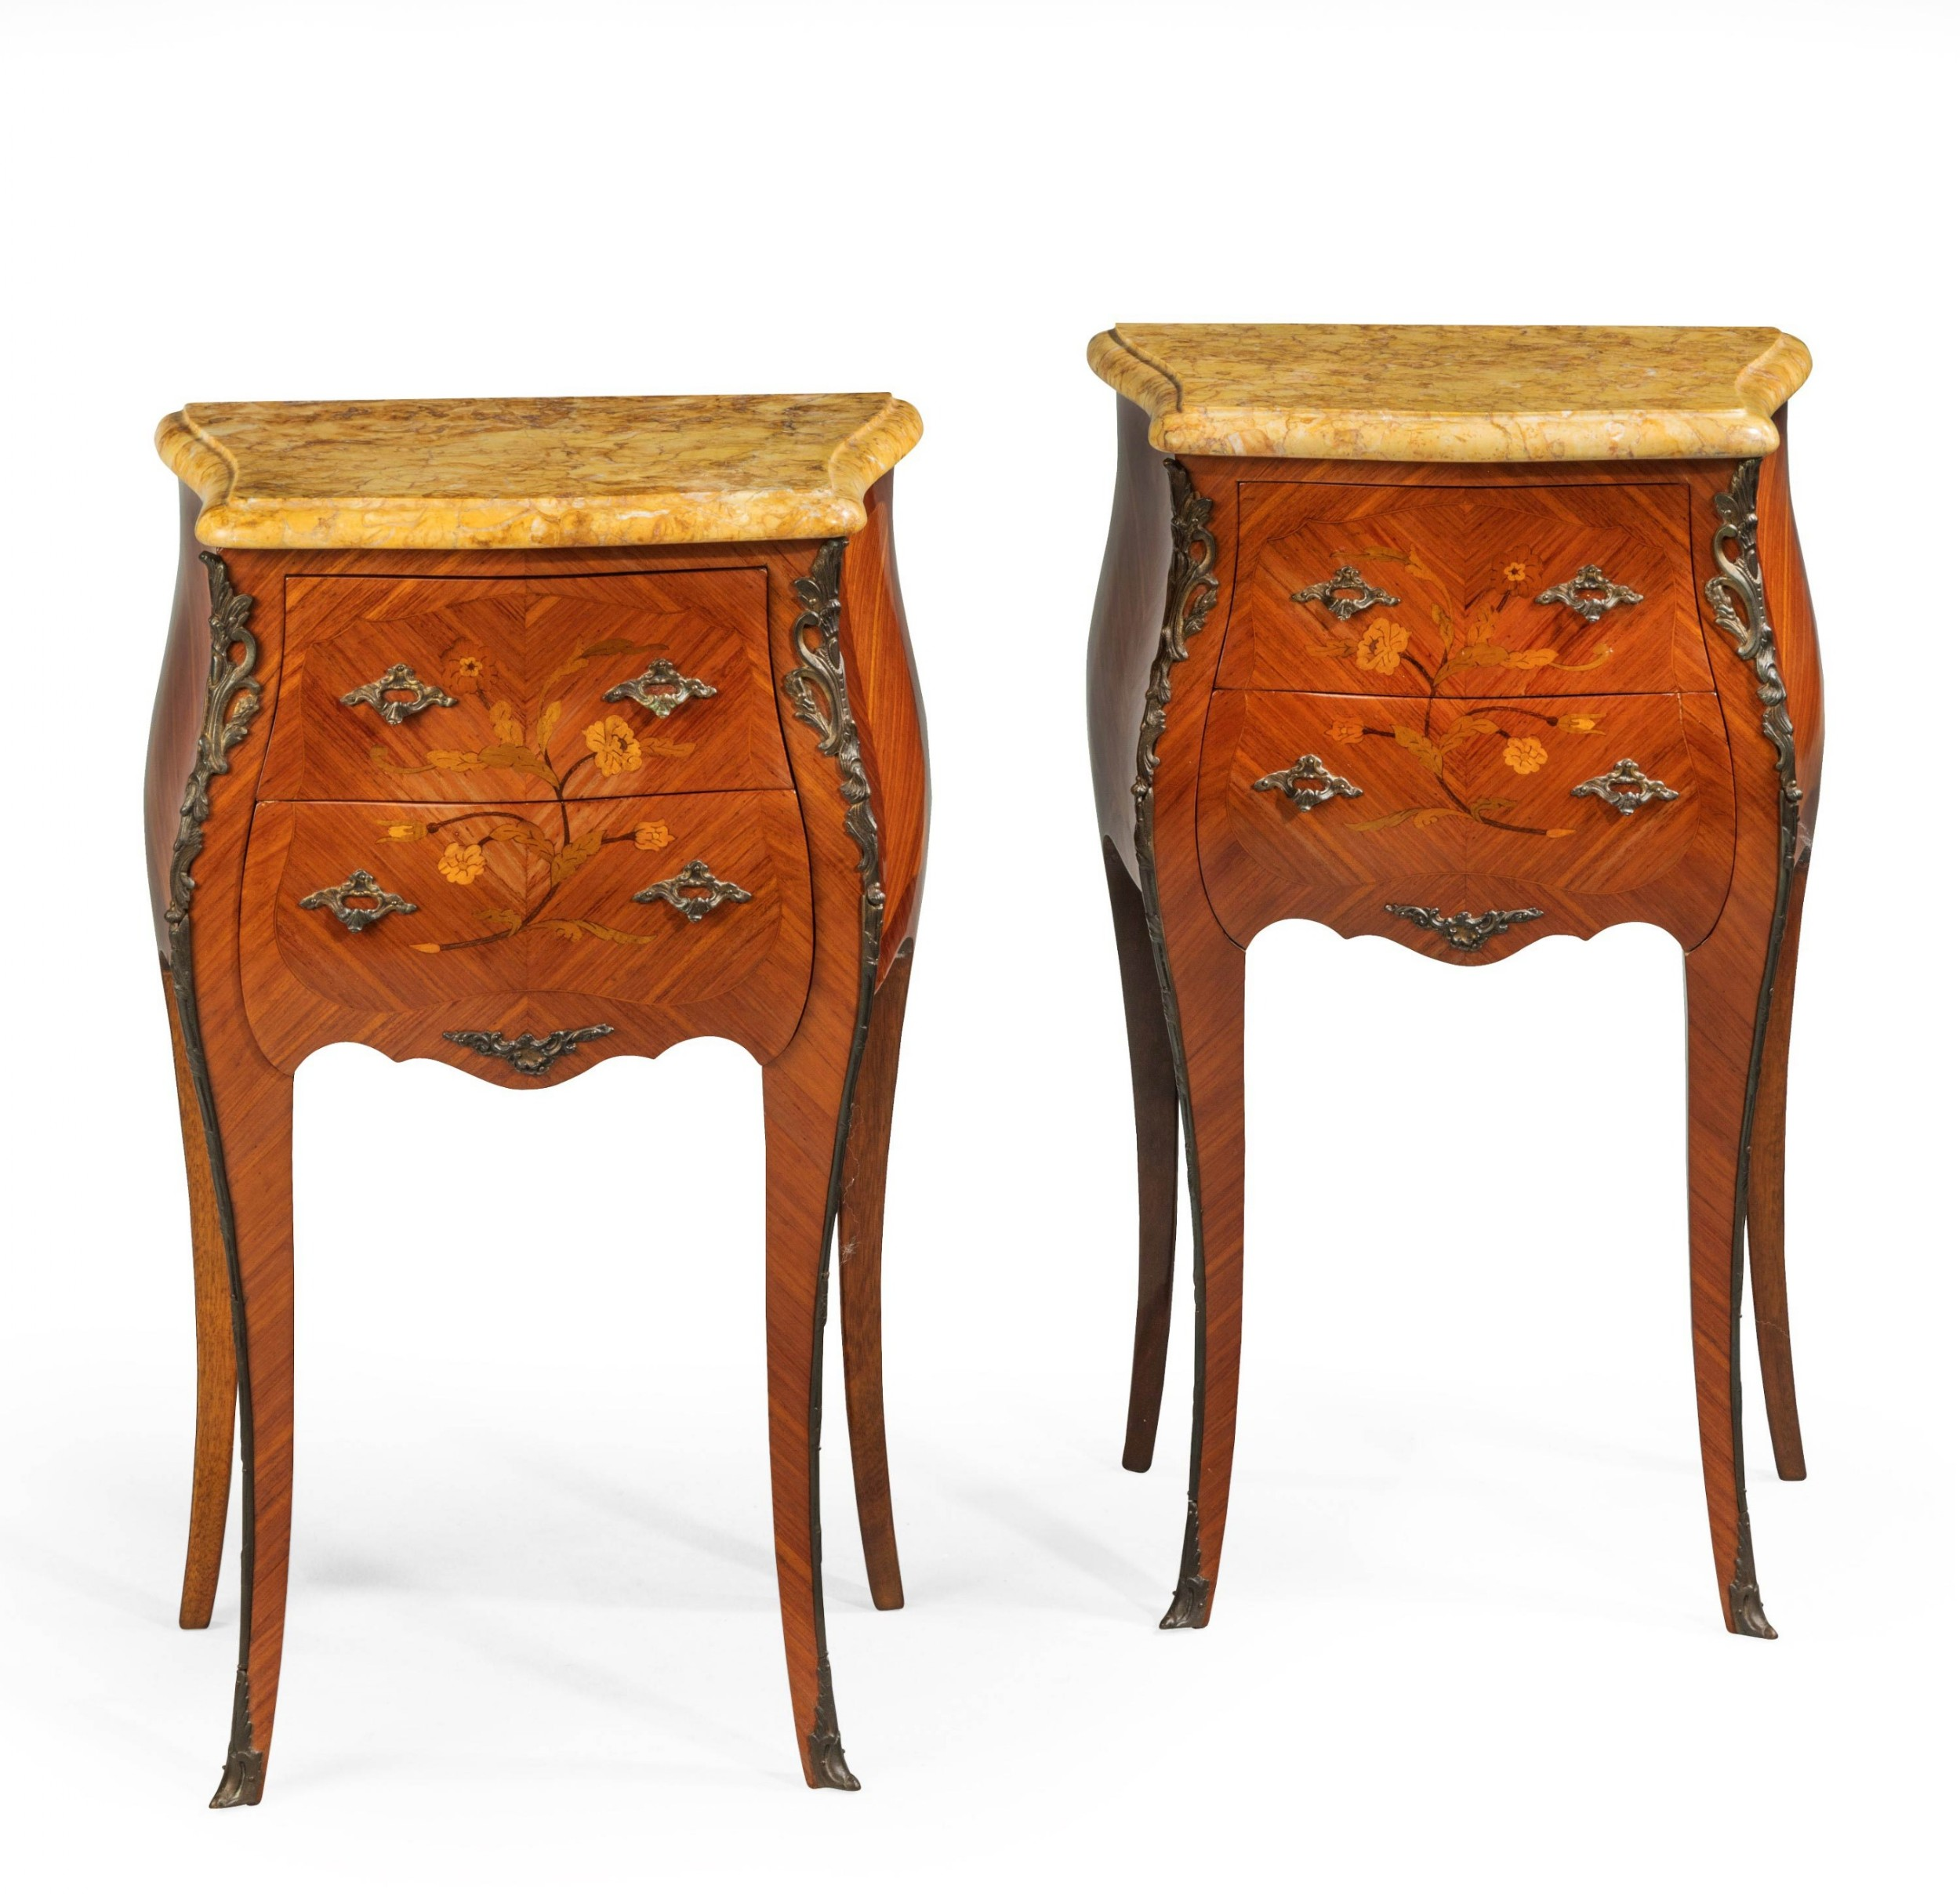 pair of french late 19th century marquetry petite commodes